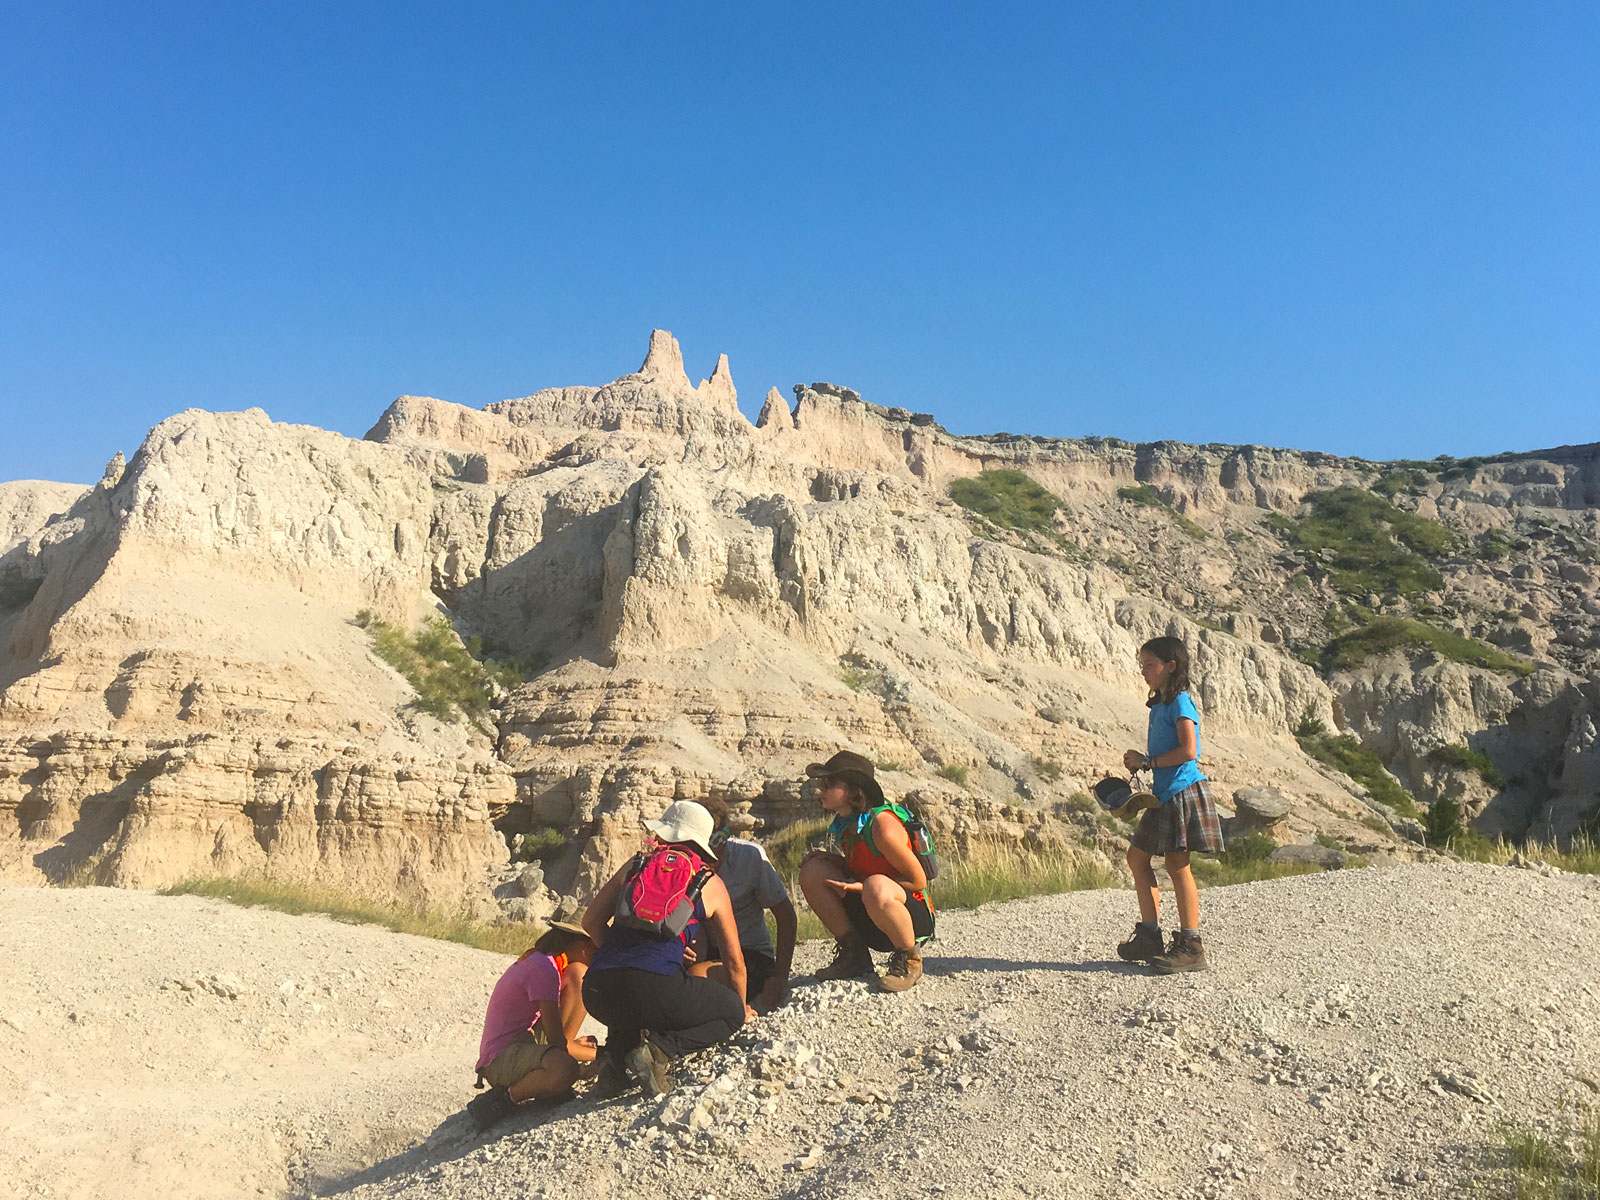 Family resting on a hike in Badlands National Park, South Dakota